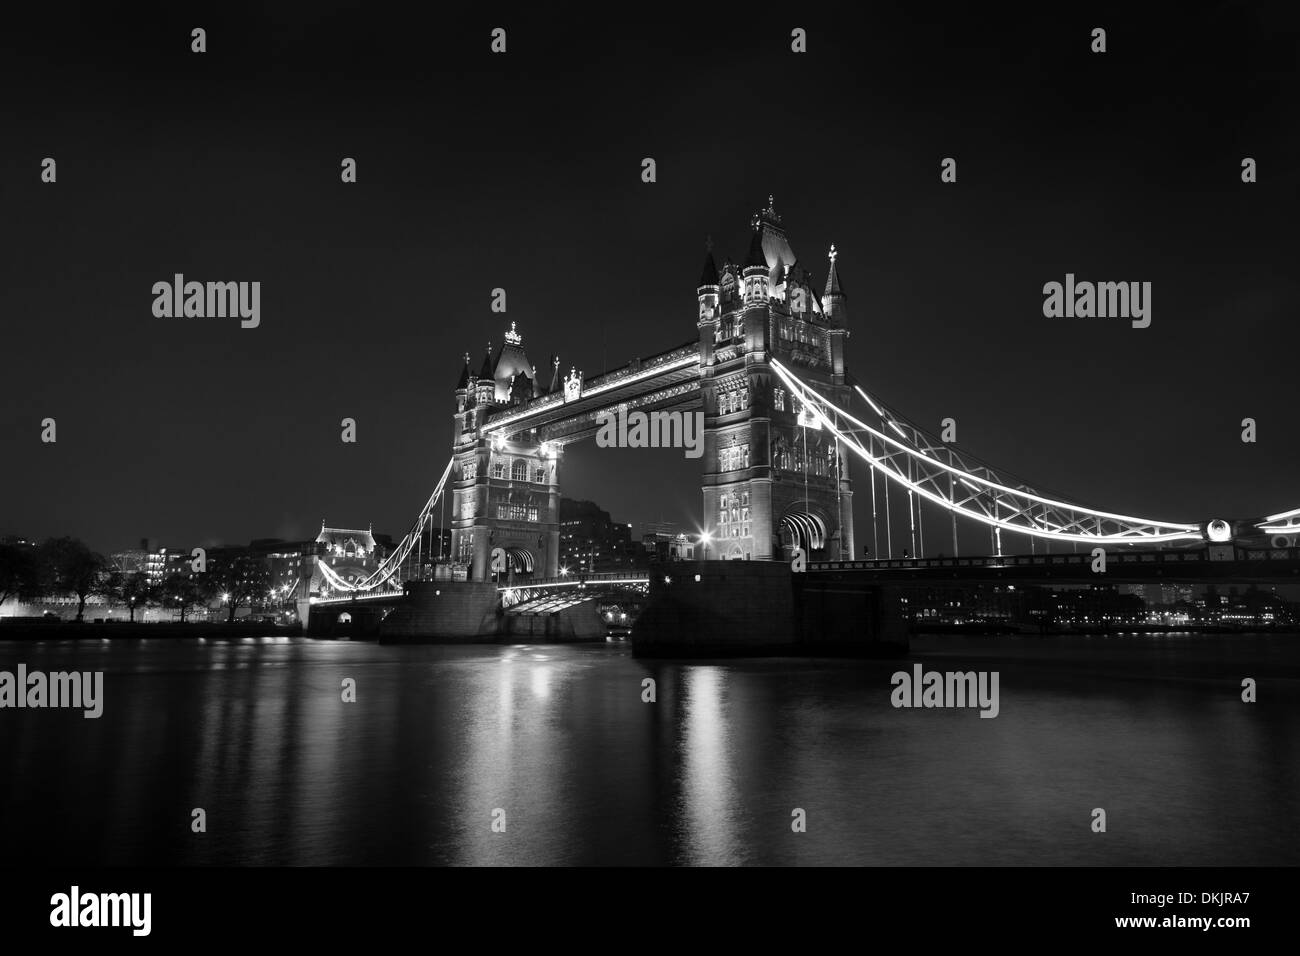 London Tower Bridge at Night B&W rendition, long exposure, over Thames River. - Stock Image